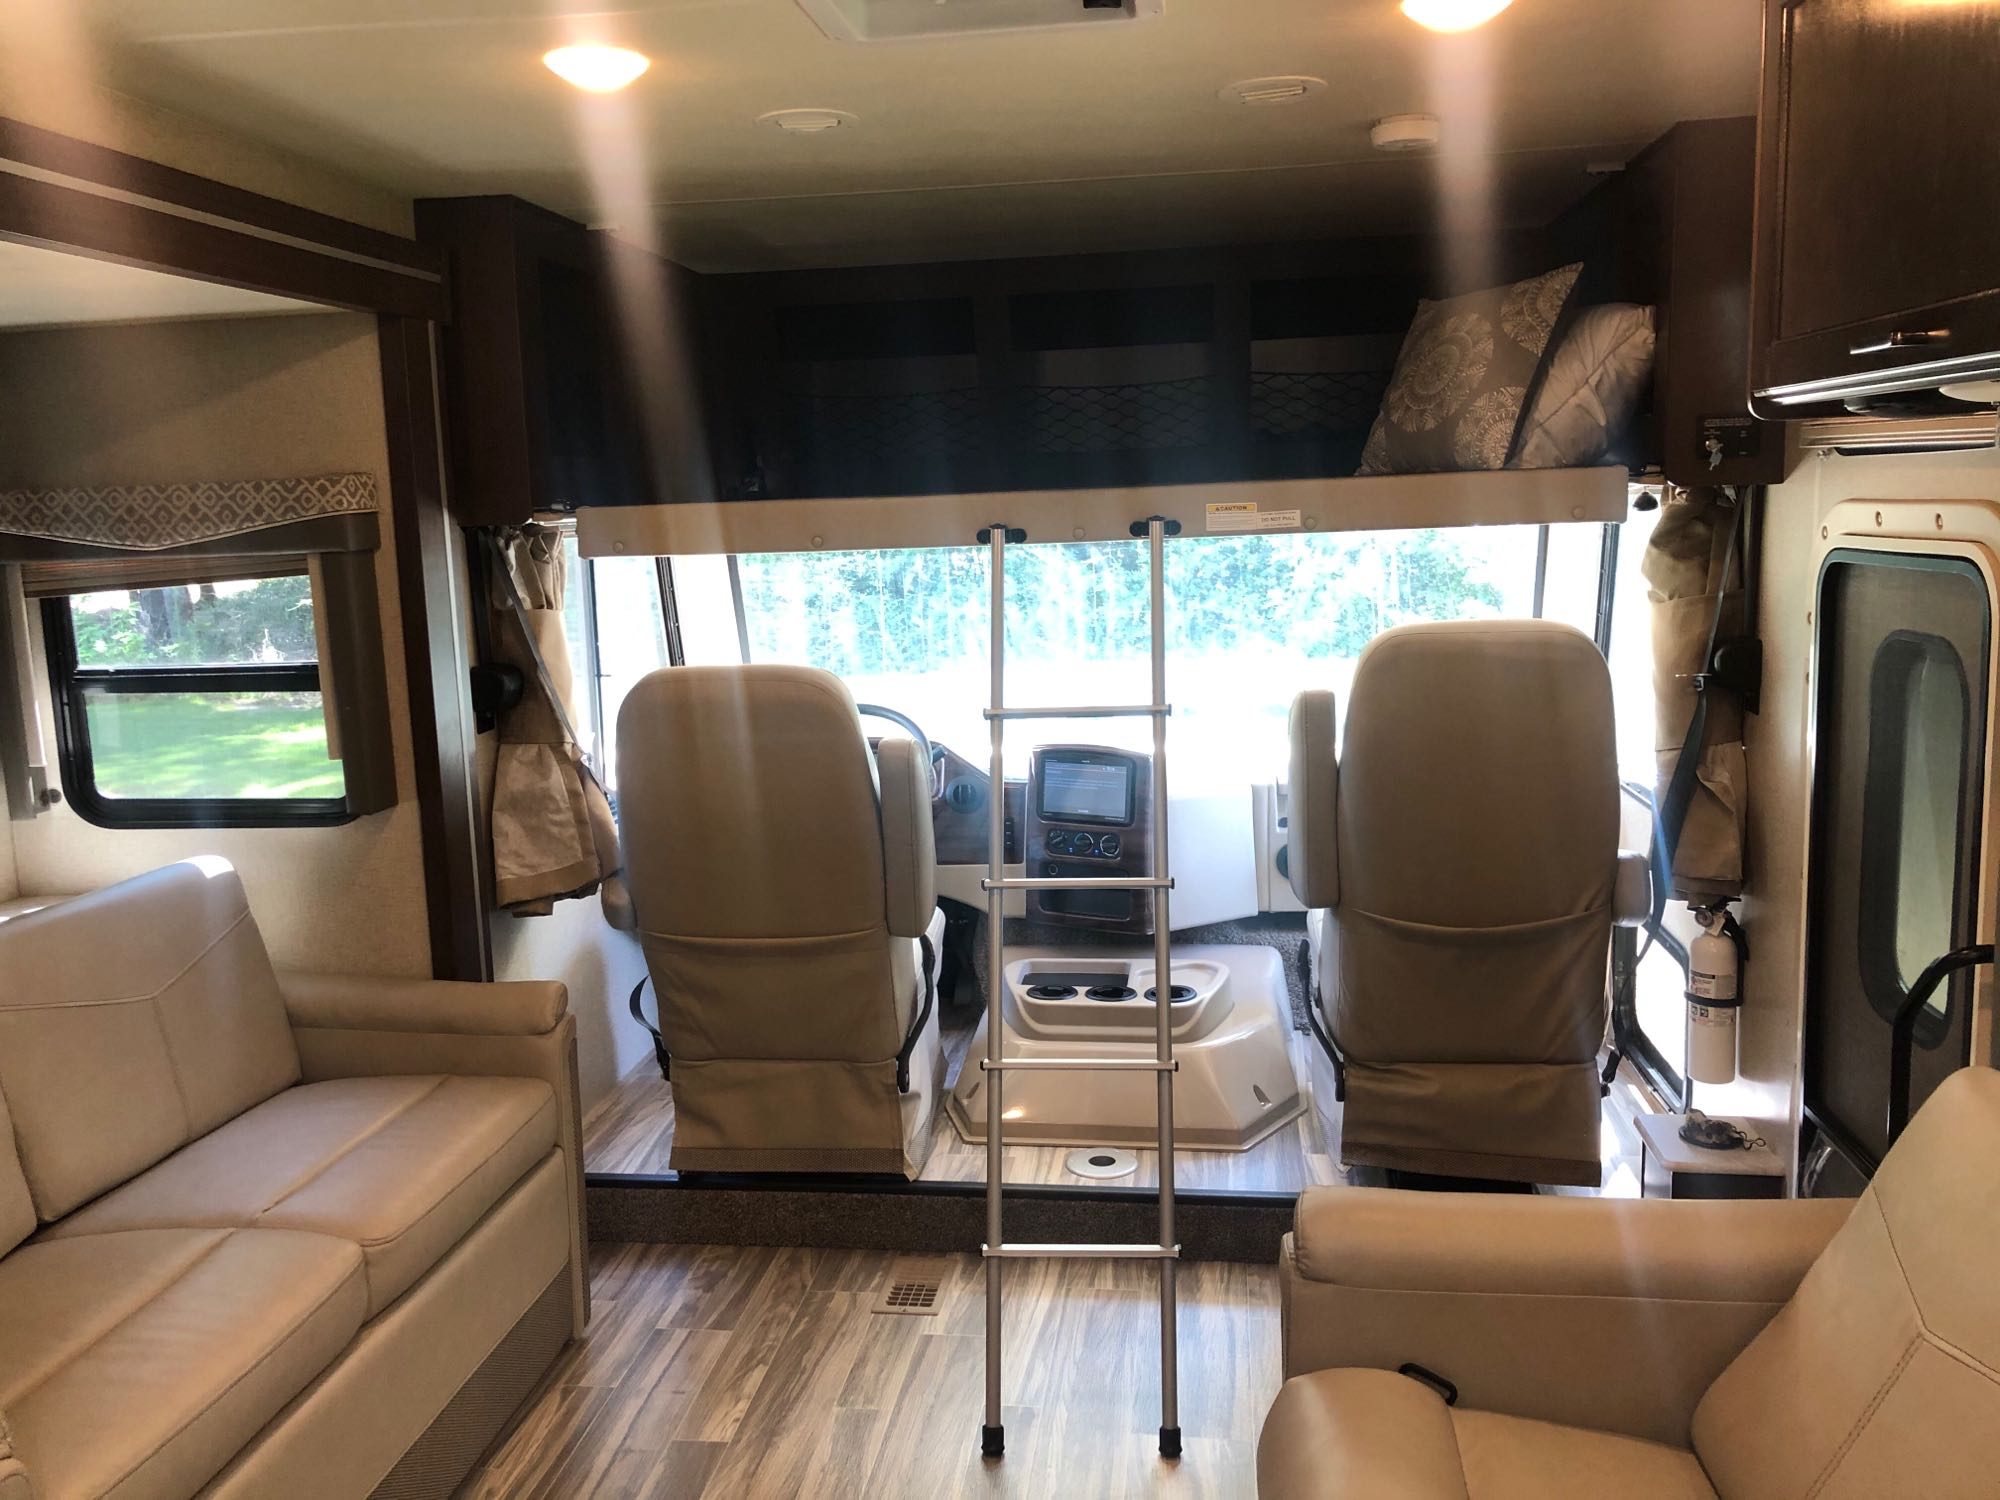 Cabin and Bunk Full Size Bed. Thor Motor Coach A.C.E 2020